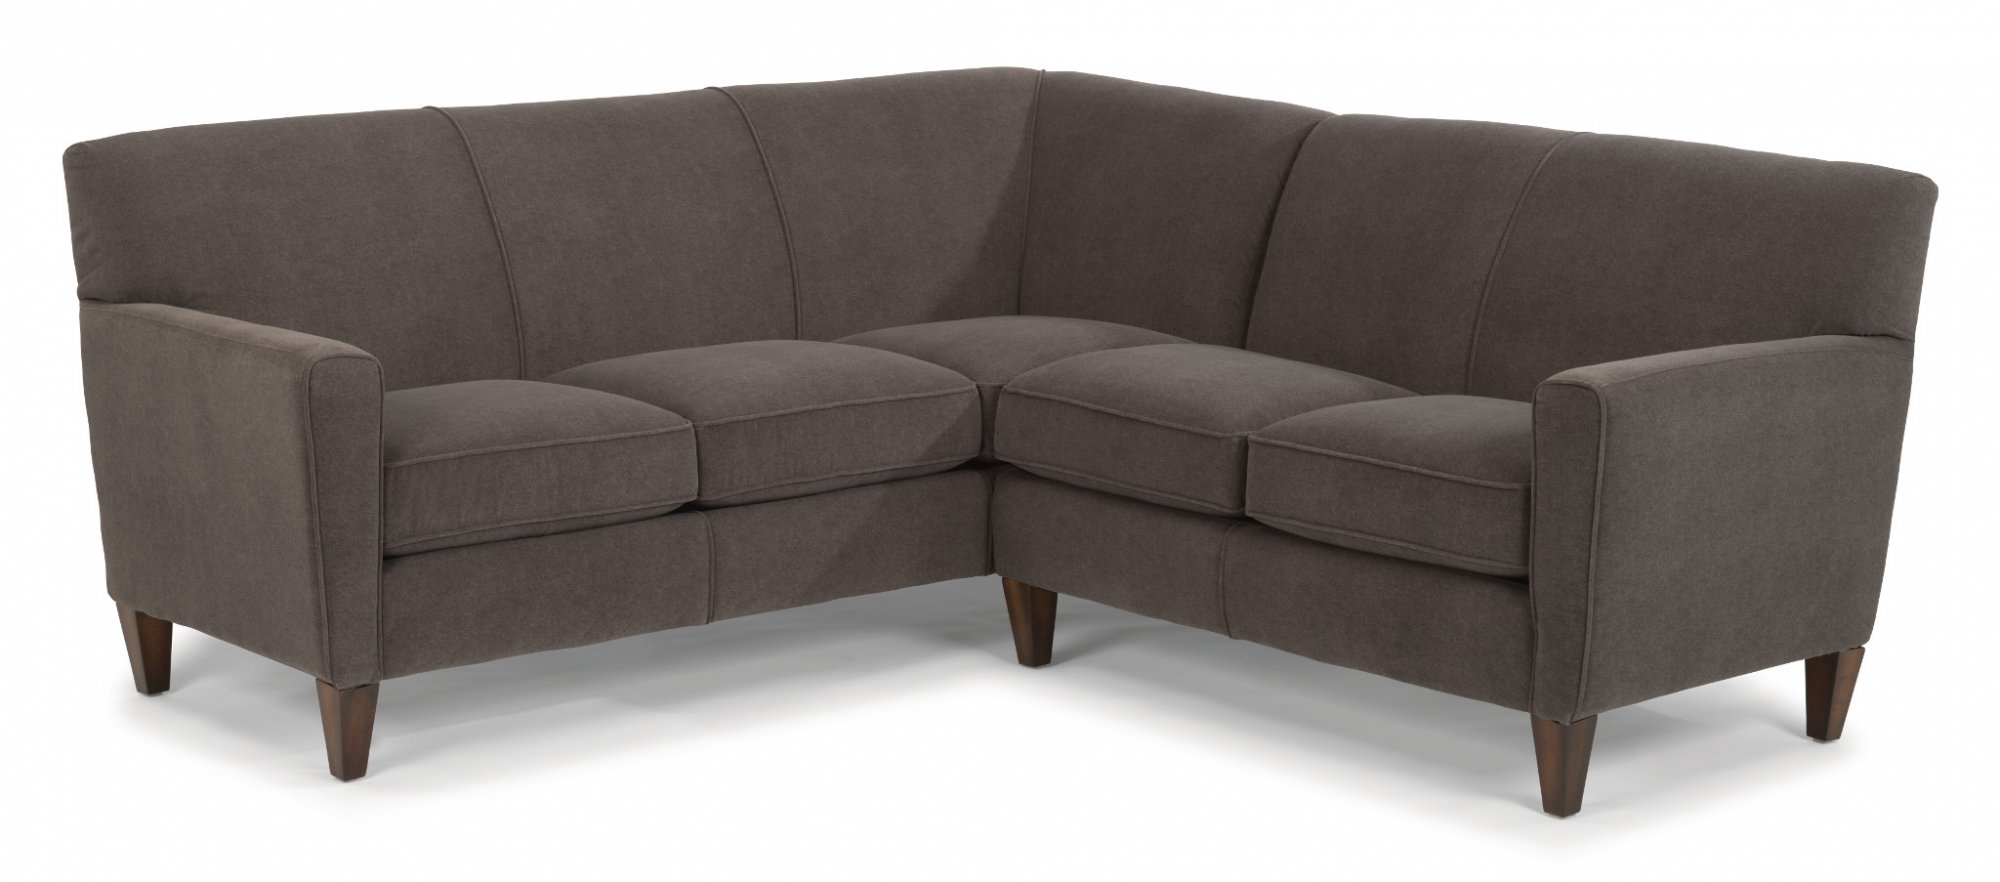 Pleasing Digby Leather High Leg Sectional Flexsteel For Home Gmtry Best Dining Table And Chair Ideas Images Gmtryco